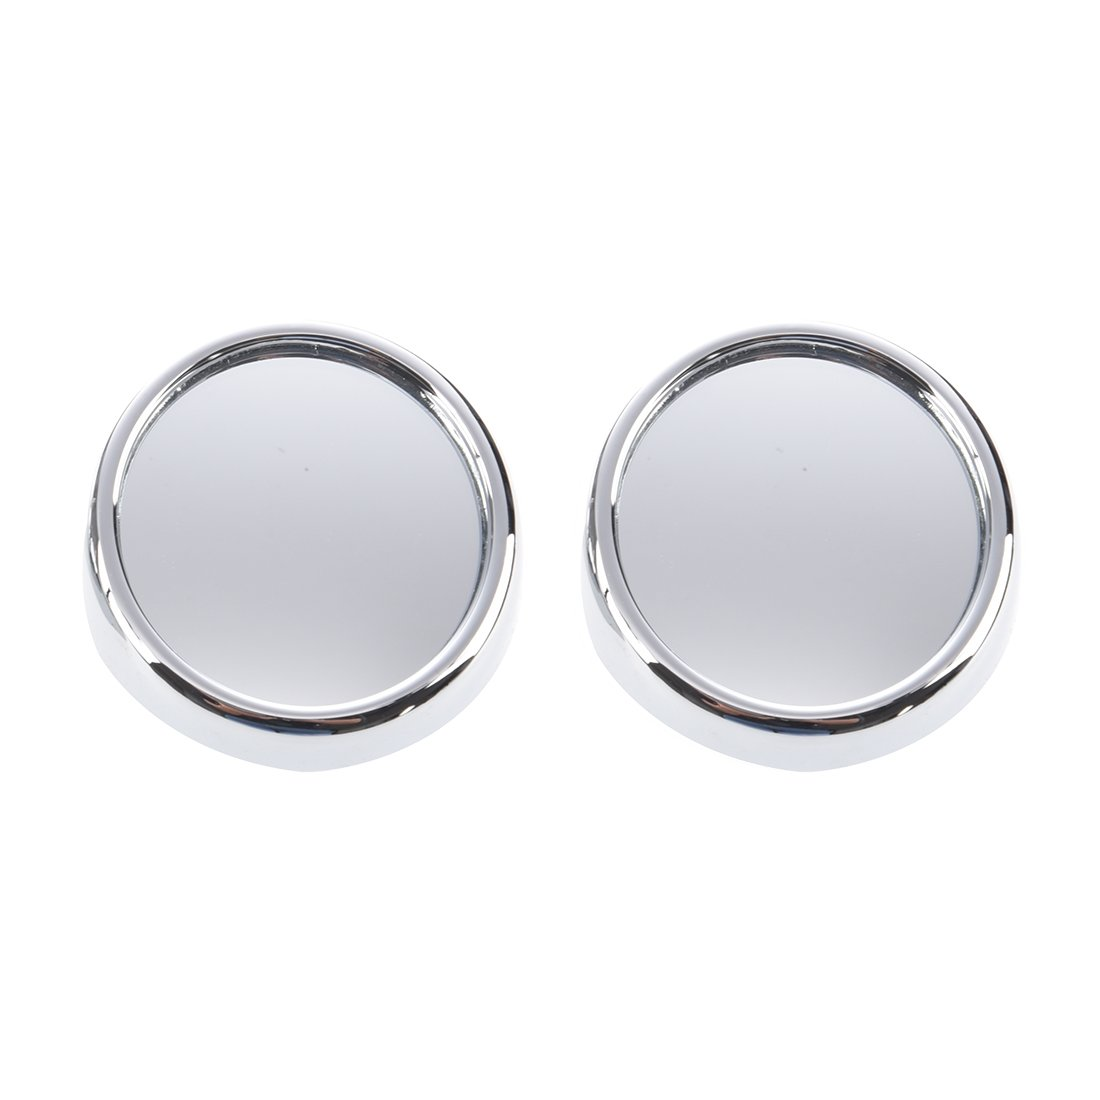 SODIAL(R) 1.5' Stick-on Convex Round Blind Spot Mirrors 2 Pcs